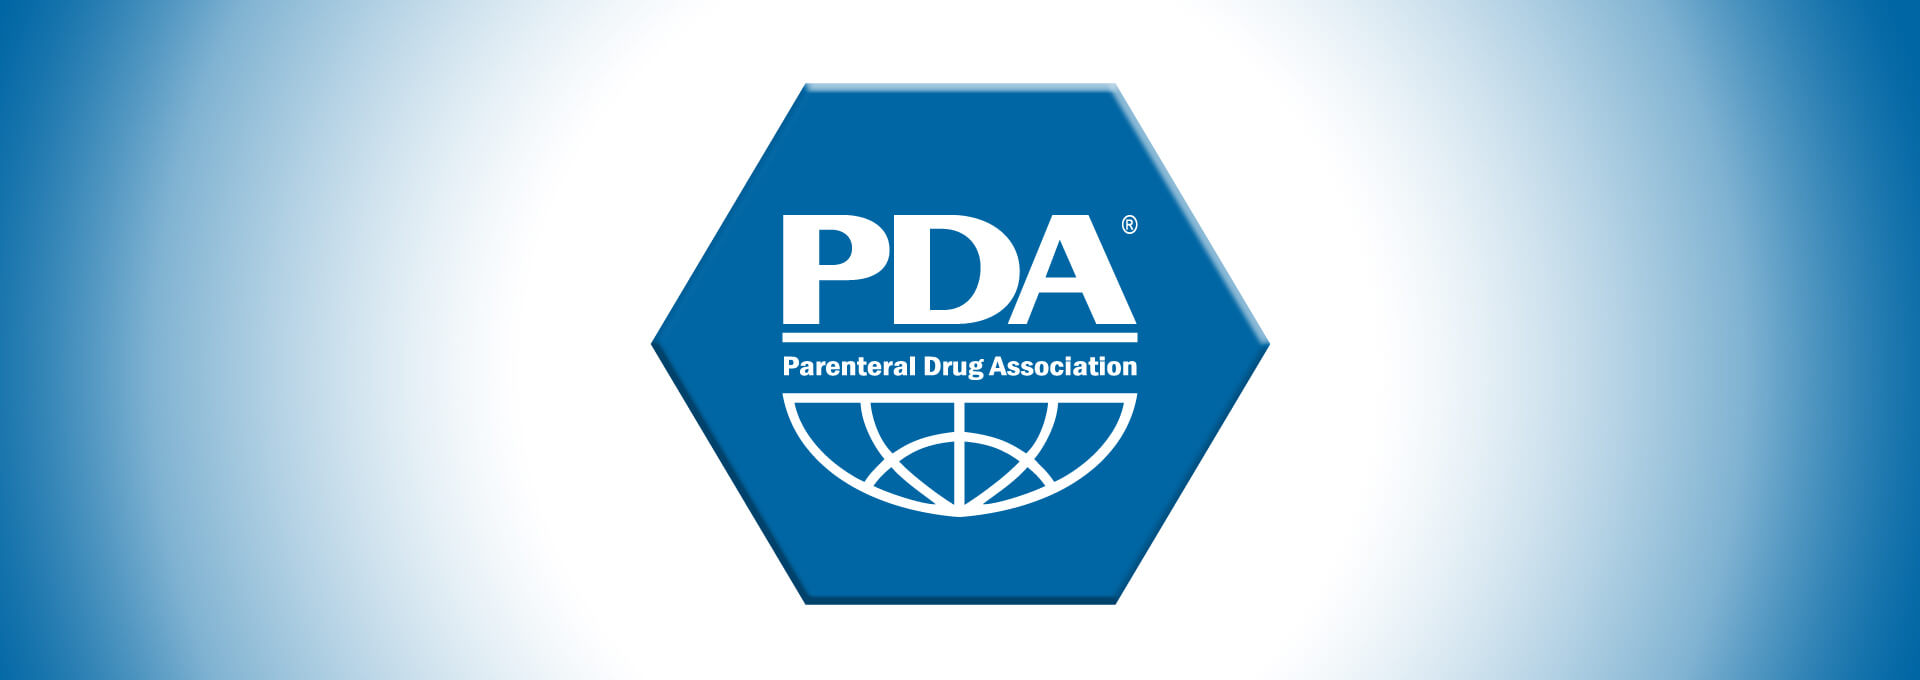 Nominations for PDA Board of Directors Accepted until May 10